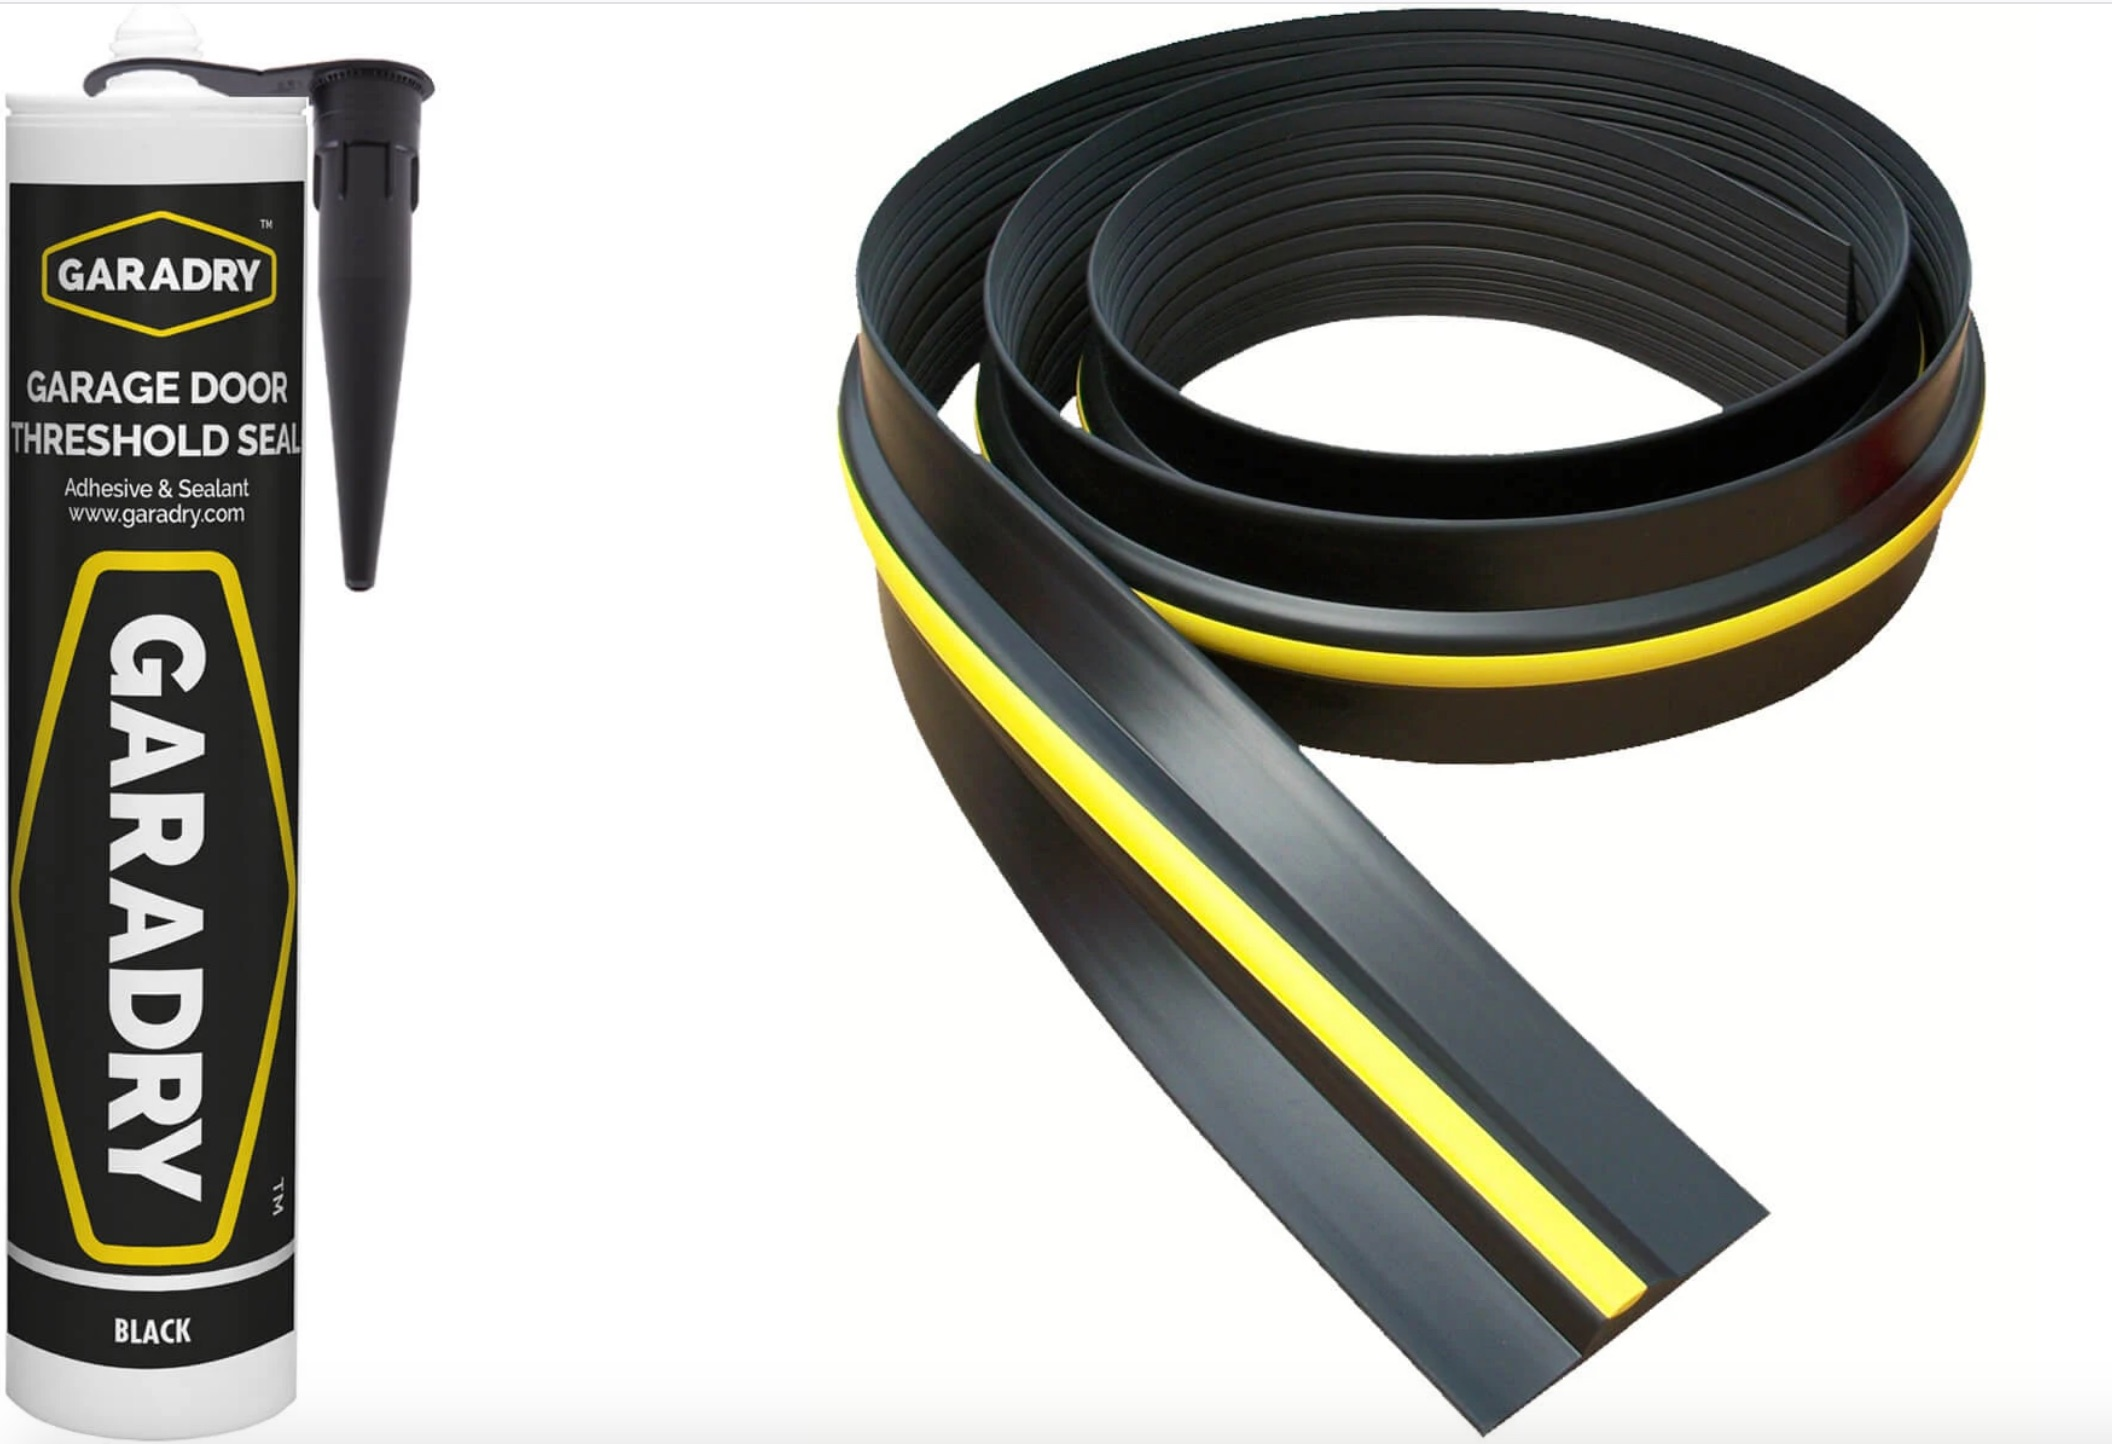 15mm High x 3.12m - 10 foot 3 Long 1 x Adhesive